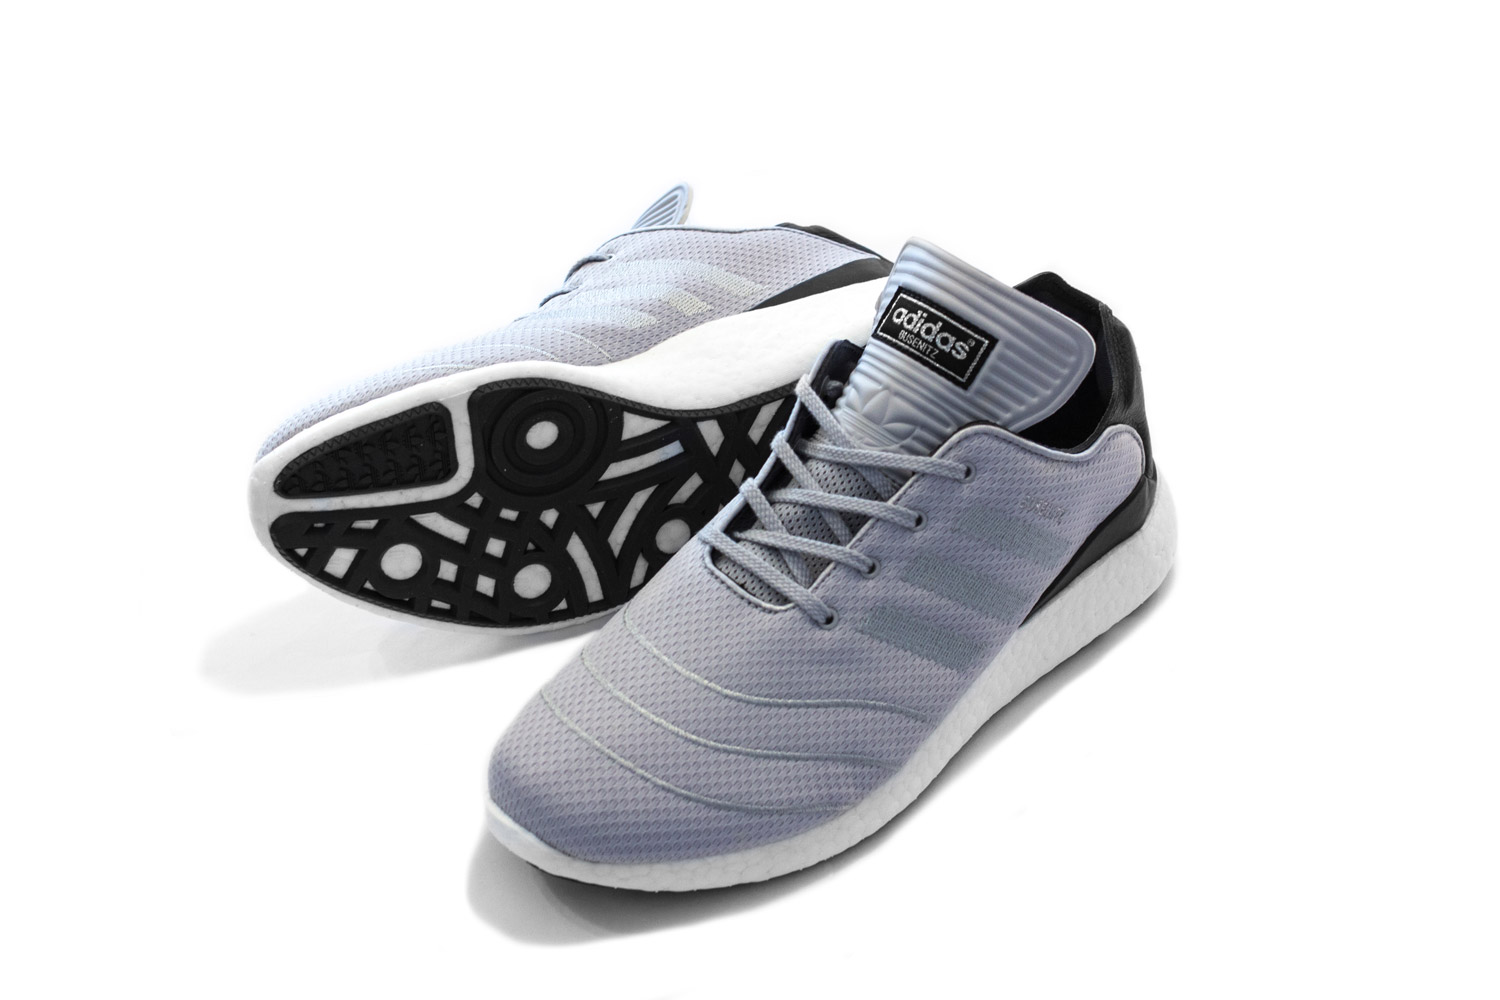 Adidas Skateboarding Busenitz Pure Boost Silver Bonkers